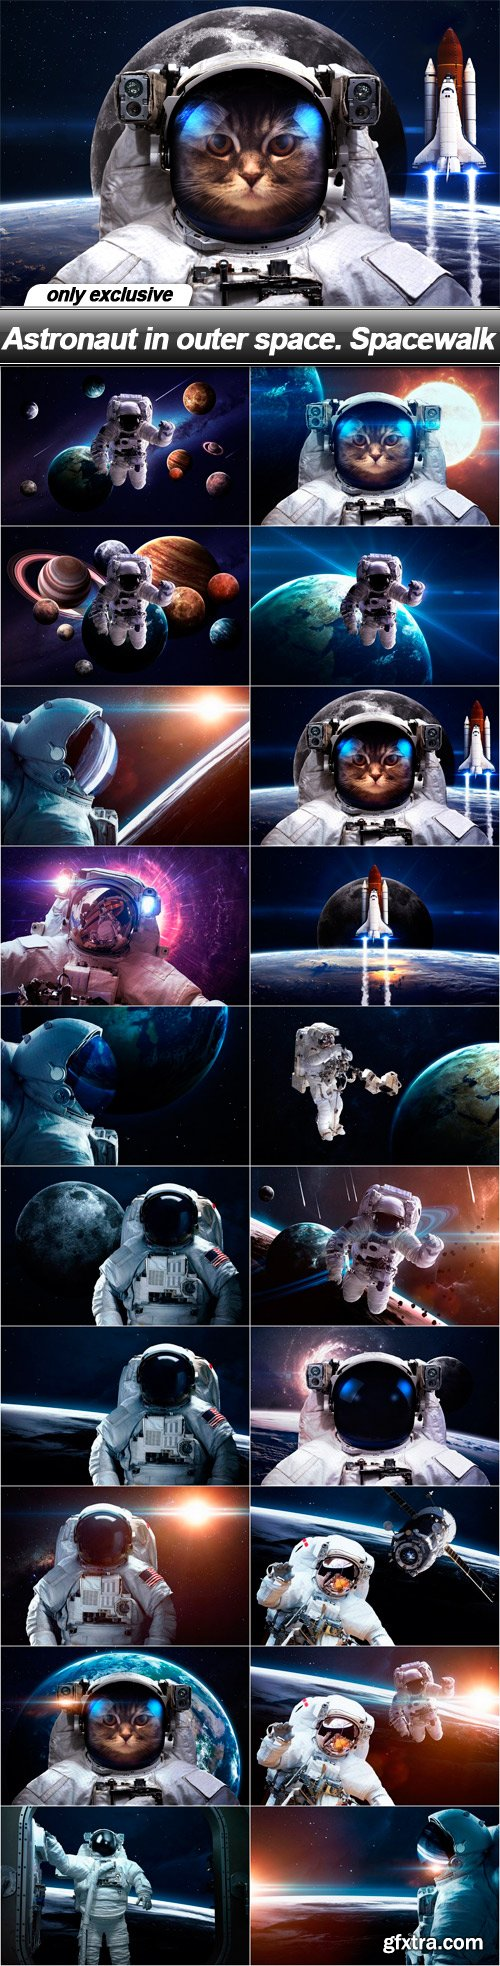 Astronaut in outer space. Spacewalk - 20 UHQ JPEG